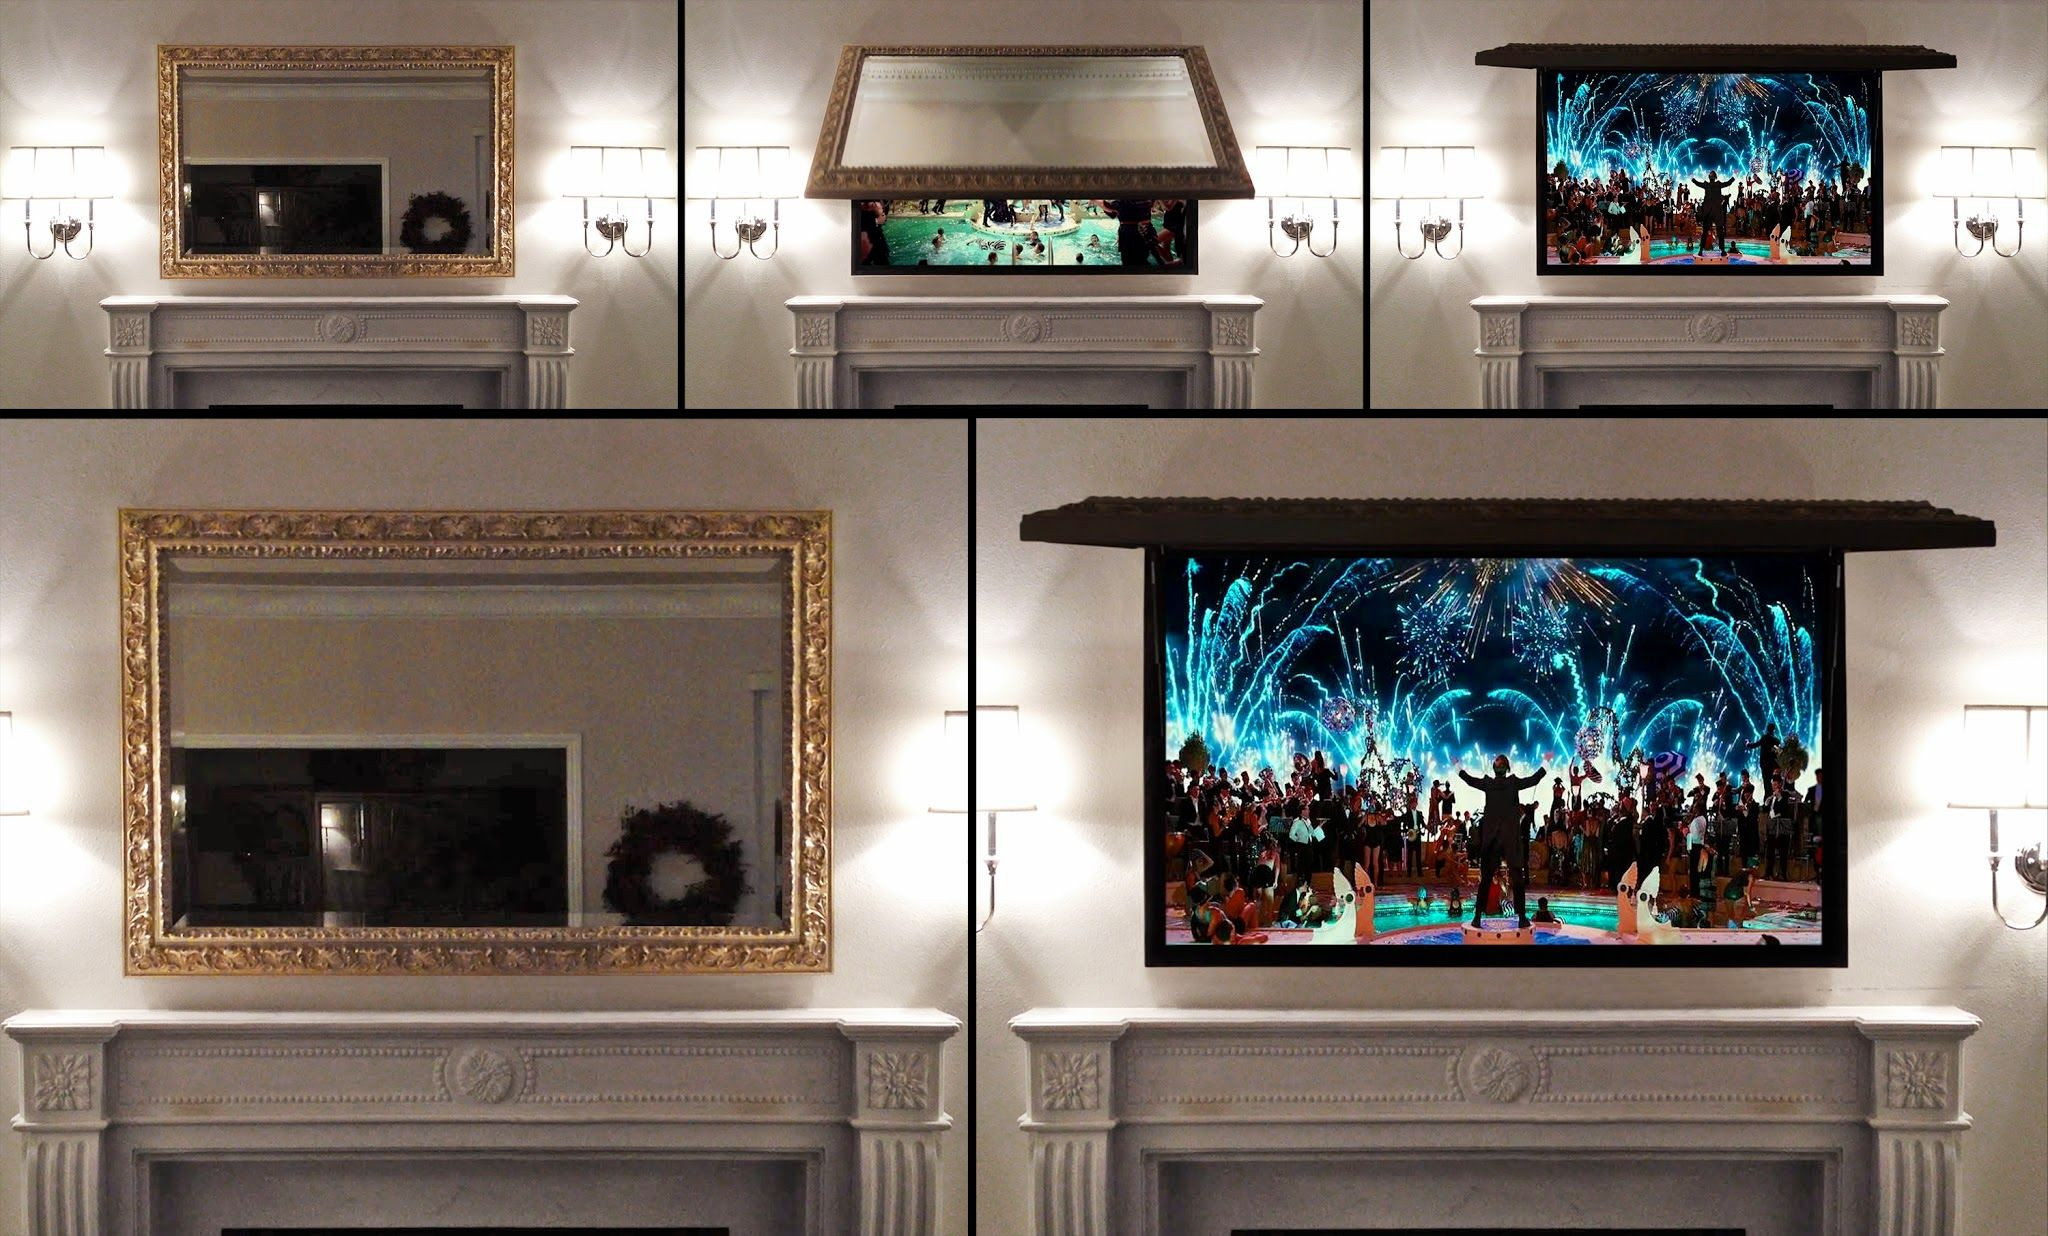 Furniture Best Hidden Tv Cabinet Pictures Creative Wall Mounted Hide With Mirror Framed In Top Of Clic White Marble Fireplace And Minimalist Sconce